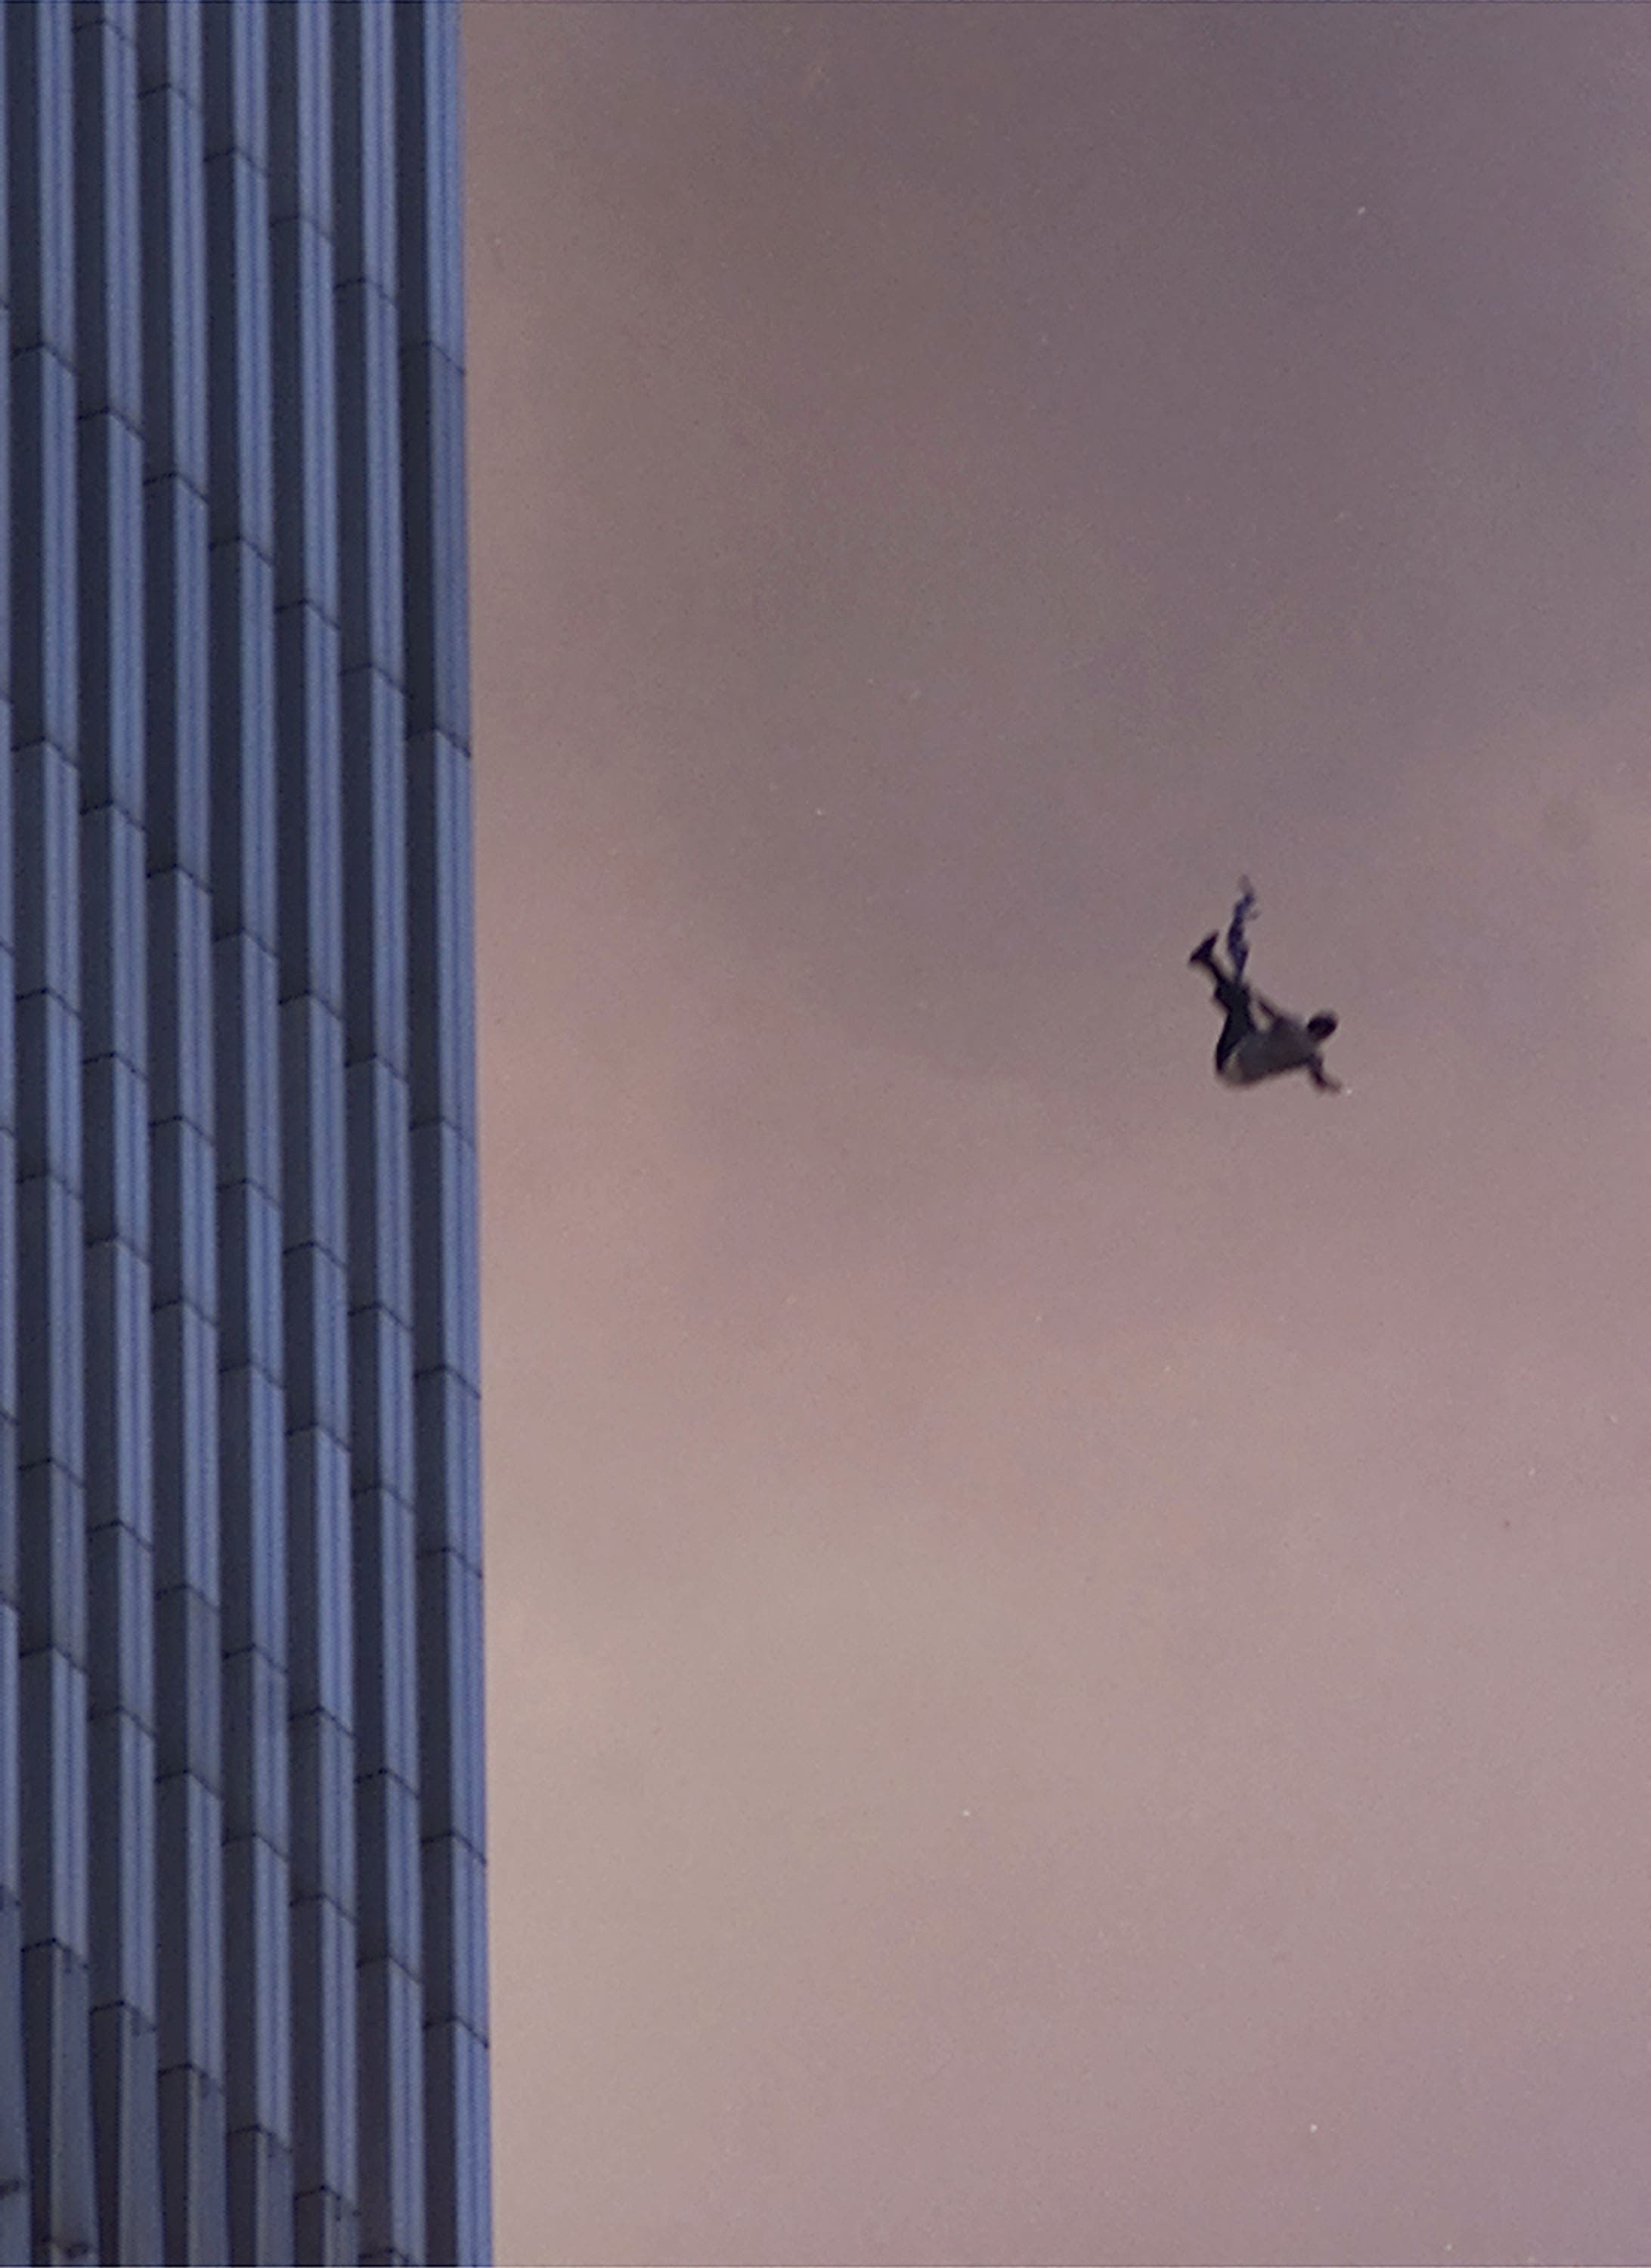 A person falls to his death from the World Trade Center after two planes hit the Twin Towers September 11, 2001 in New York City. (AFP)